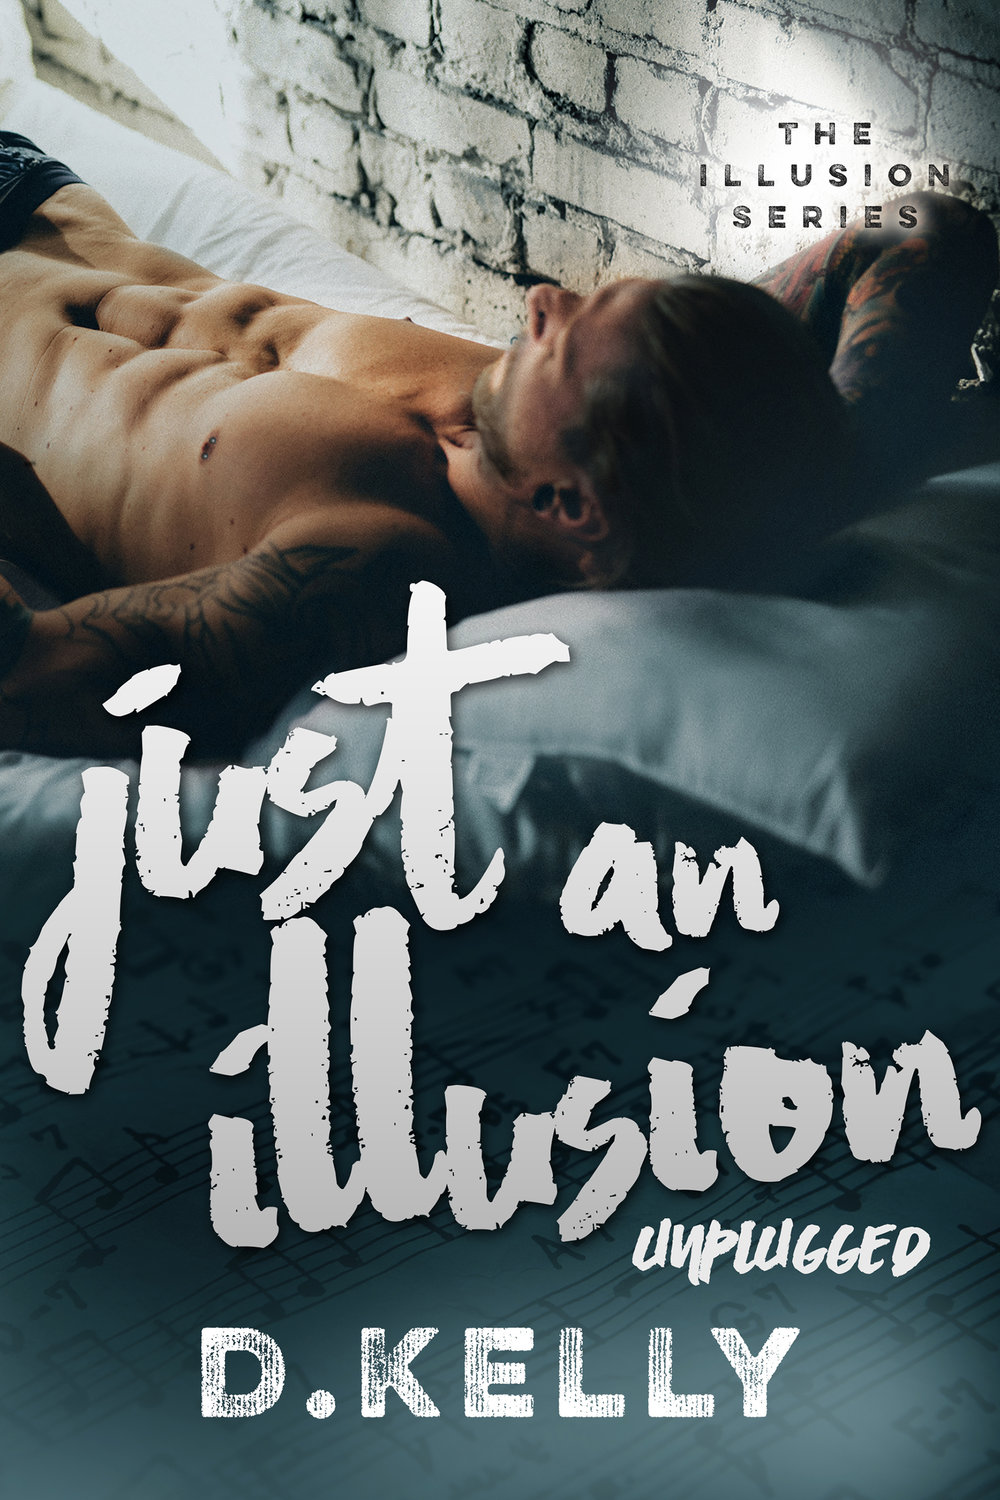 JustAnIllusion-Unplugged Final-ebooklg.JPG